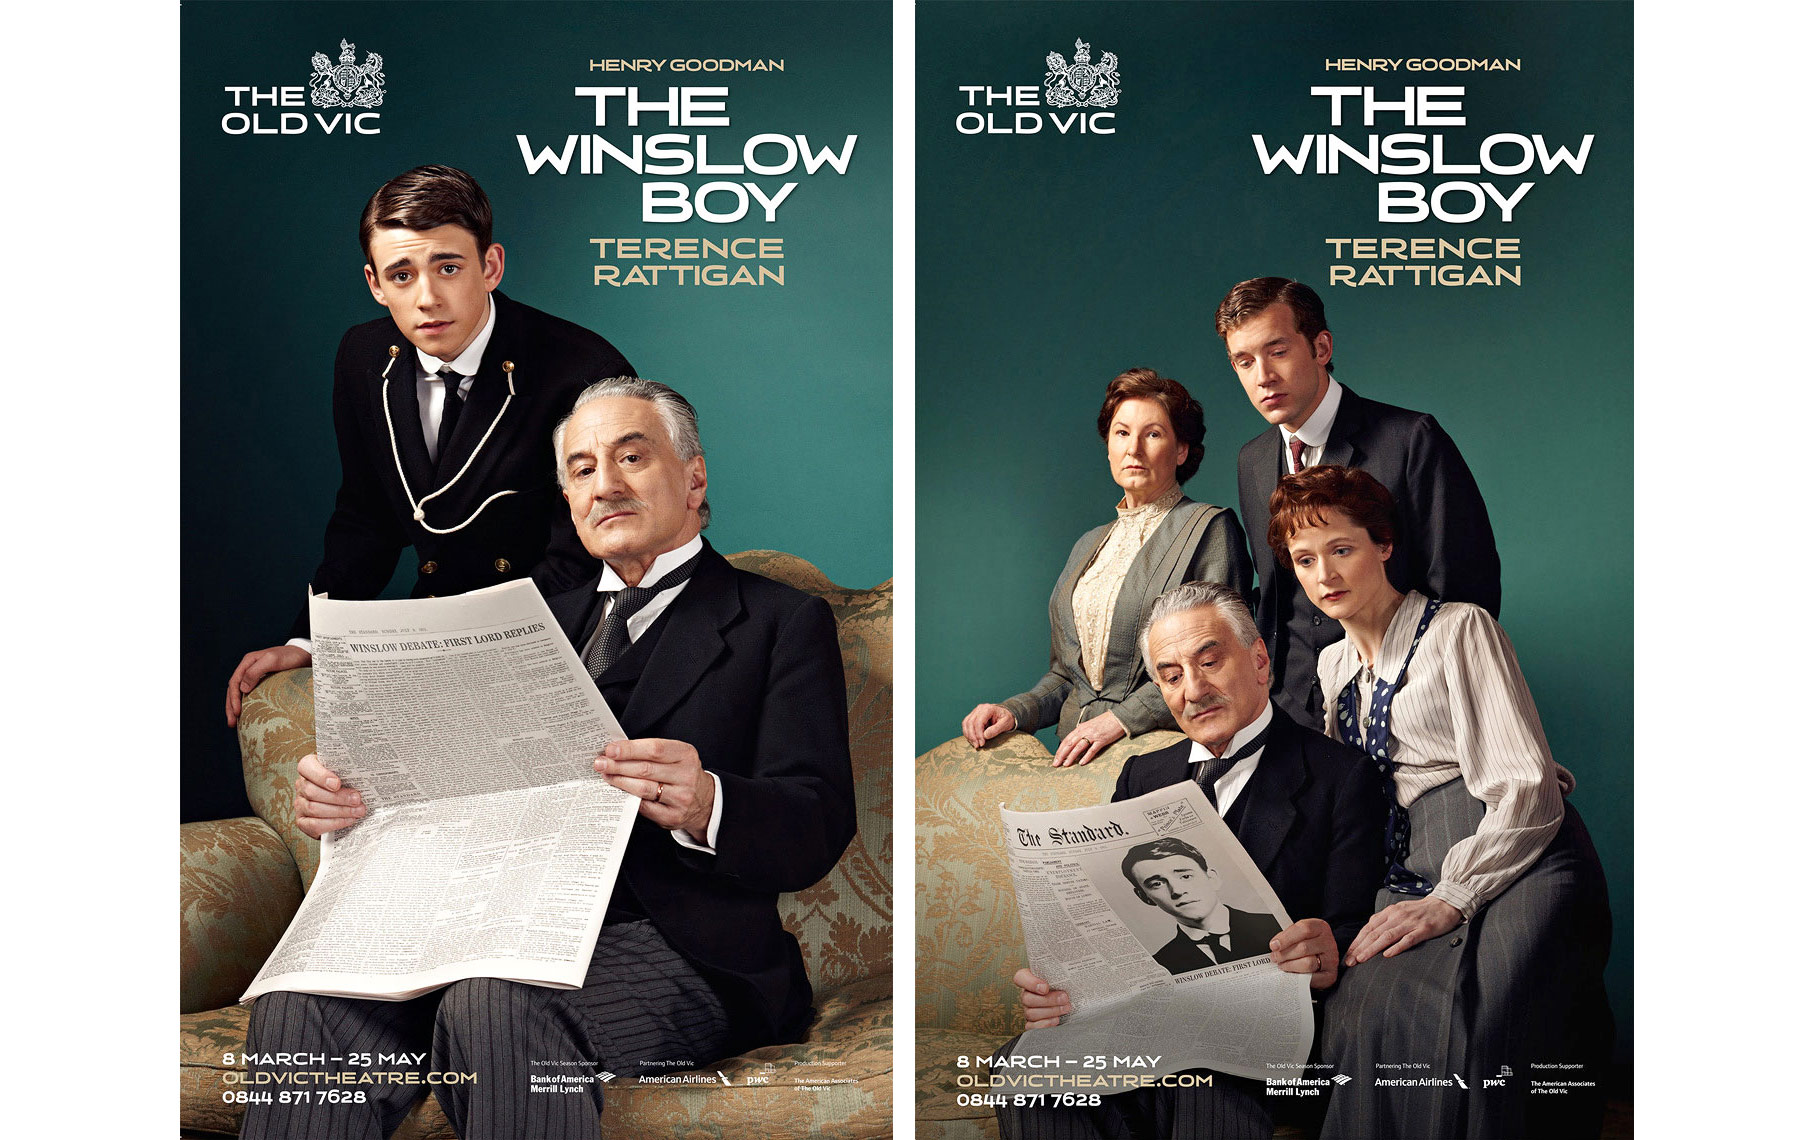 Winslow Boy / Old Vic